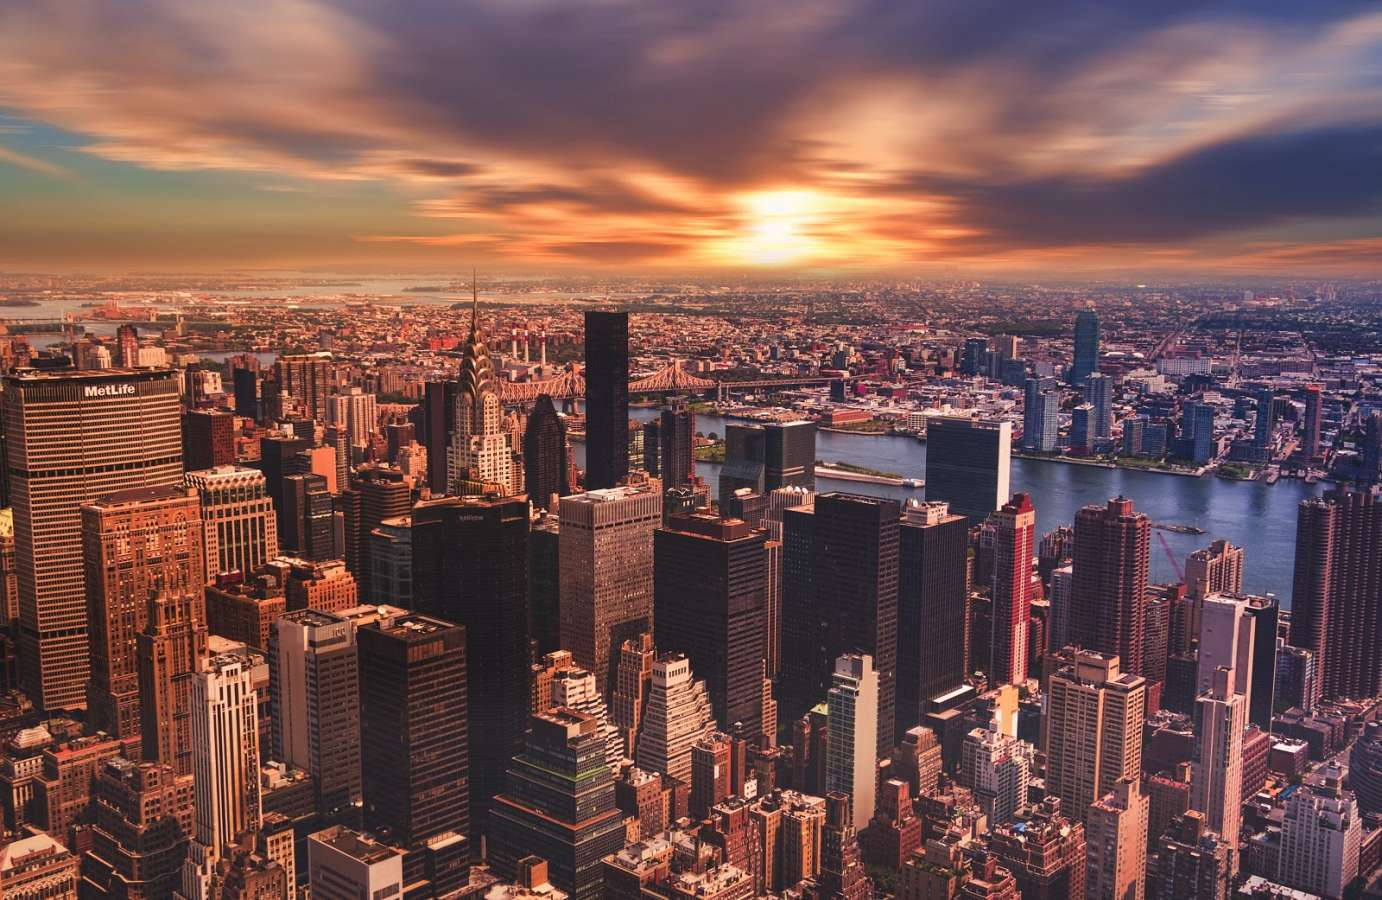 An image of the NYC skyline. The East River along with Brooklyn and Queens can be seen in in the background as the sun orange sun sets in the background, adorned with partly cloudy skies, creating a blue and orange melange of color.